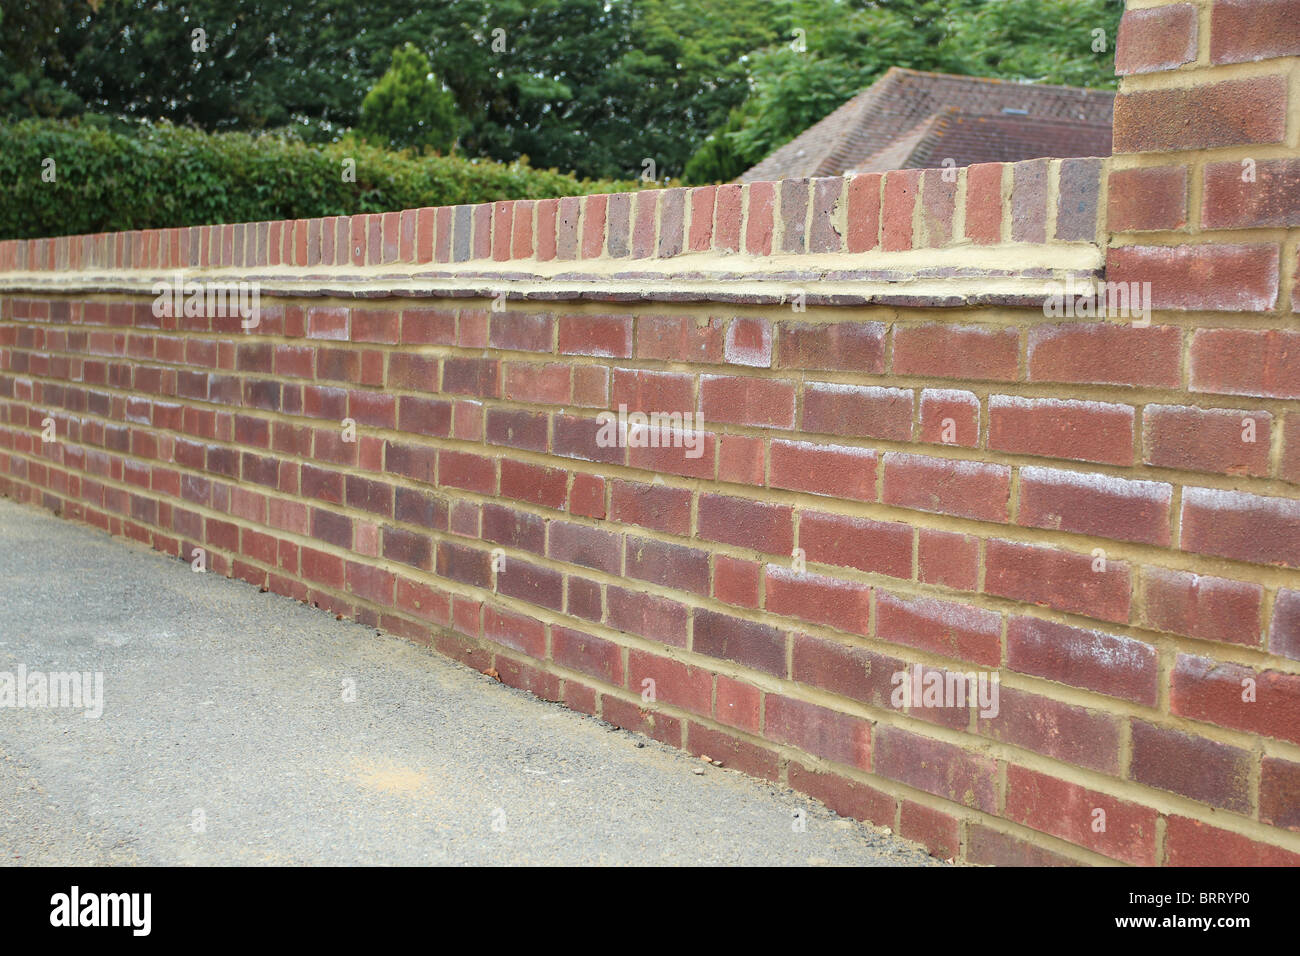 Newly constructed brick wall at the front of a house. - Stock Image